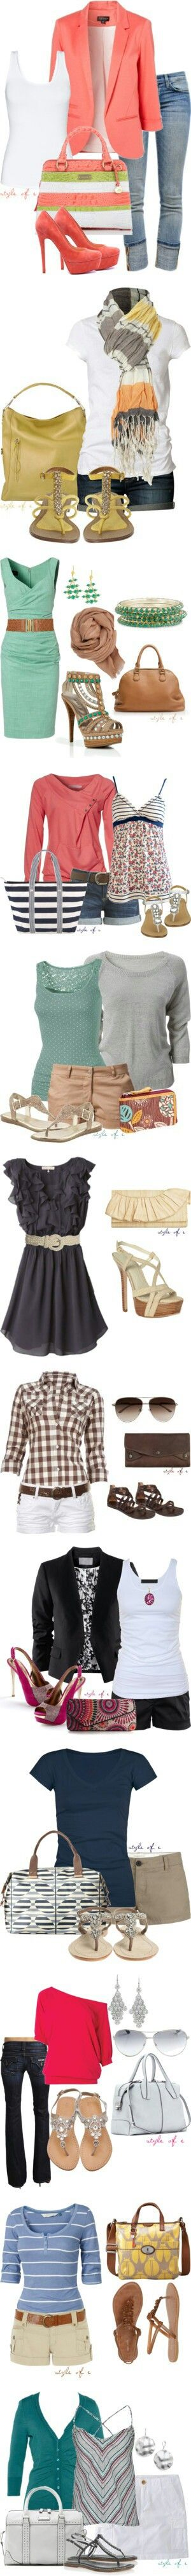 I love all these especially that dress! And the 5th picture